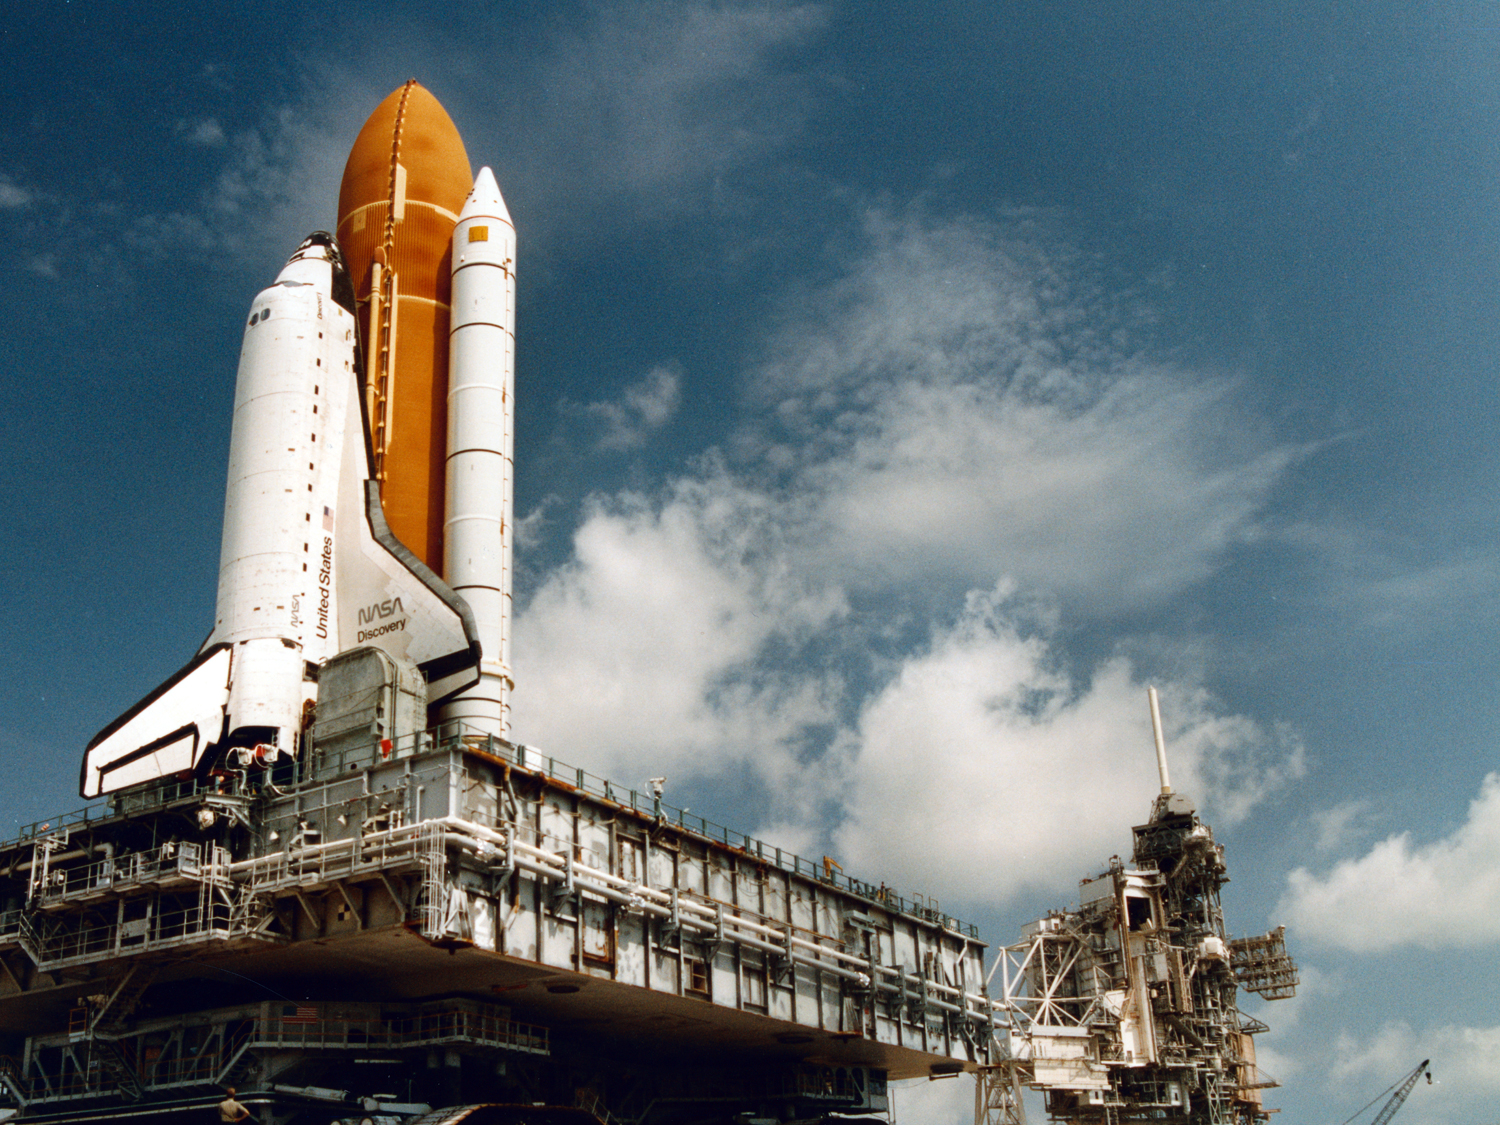 Rollout of Discovery to launch pad 39B.